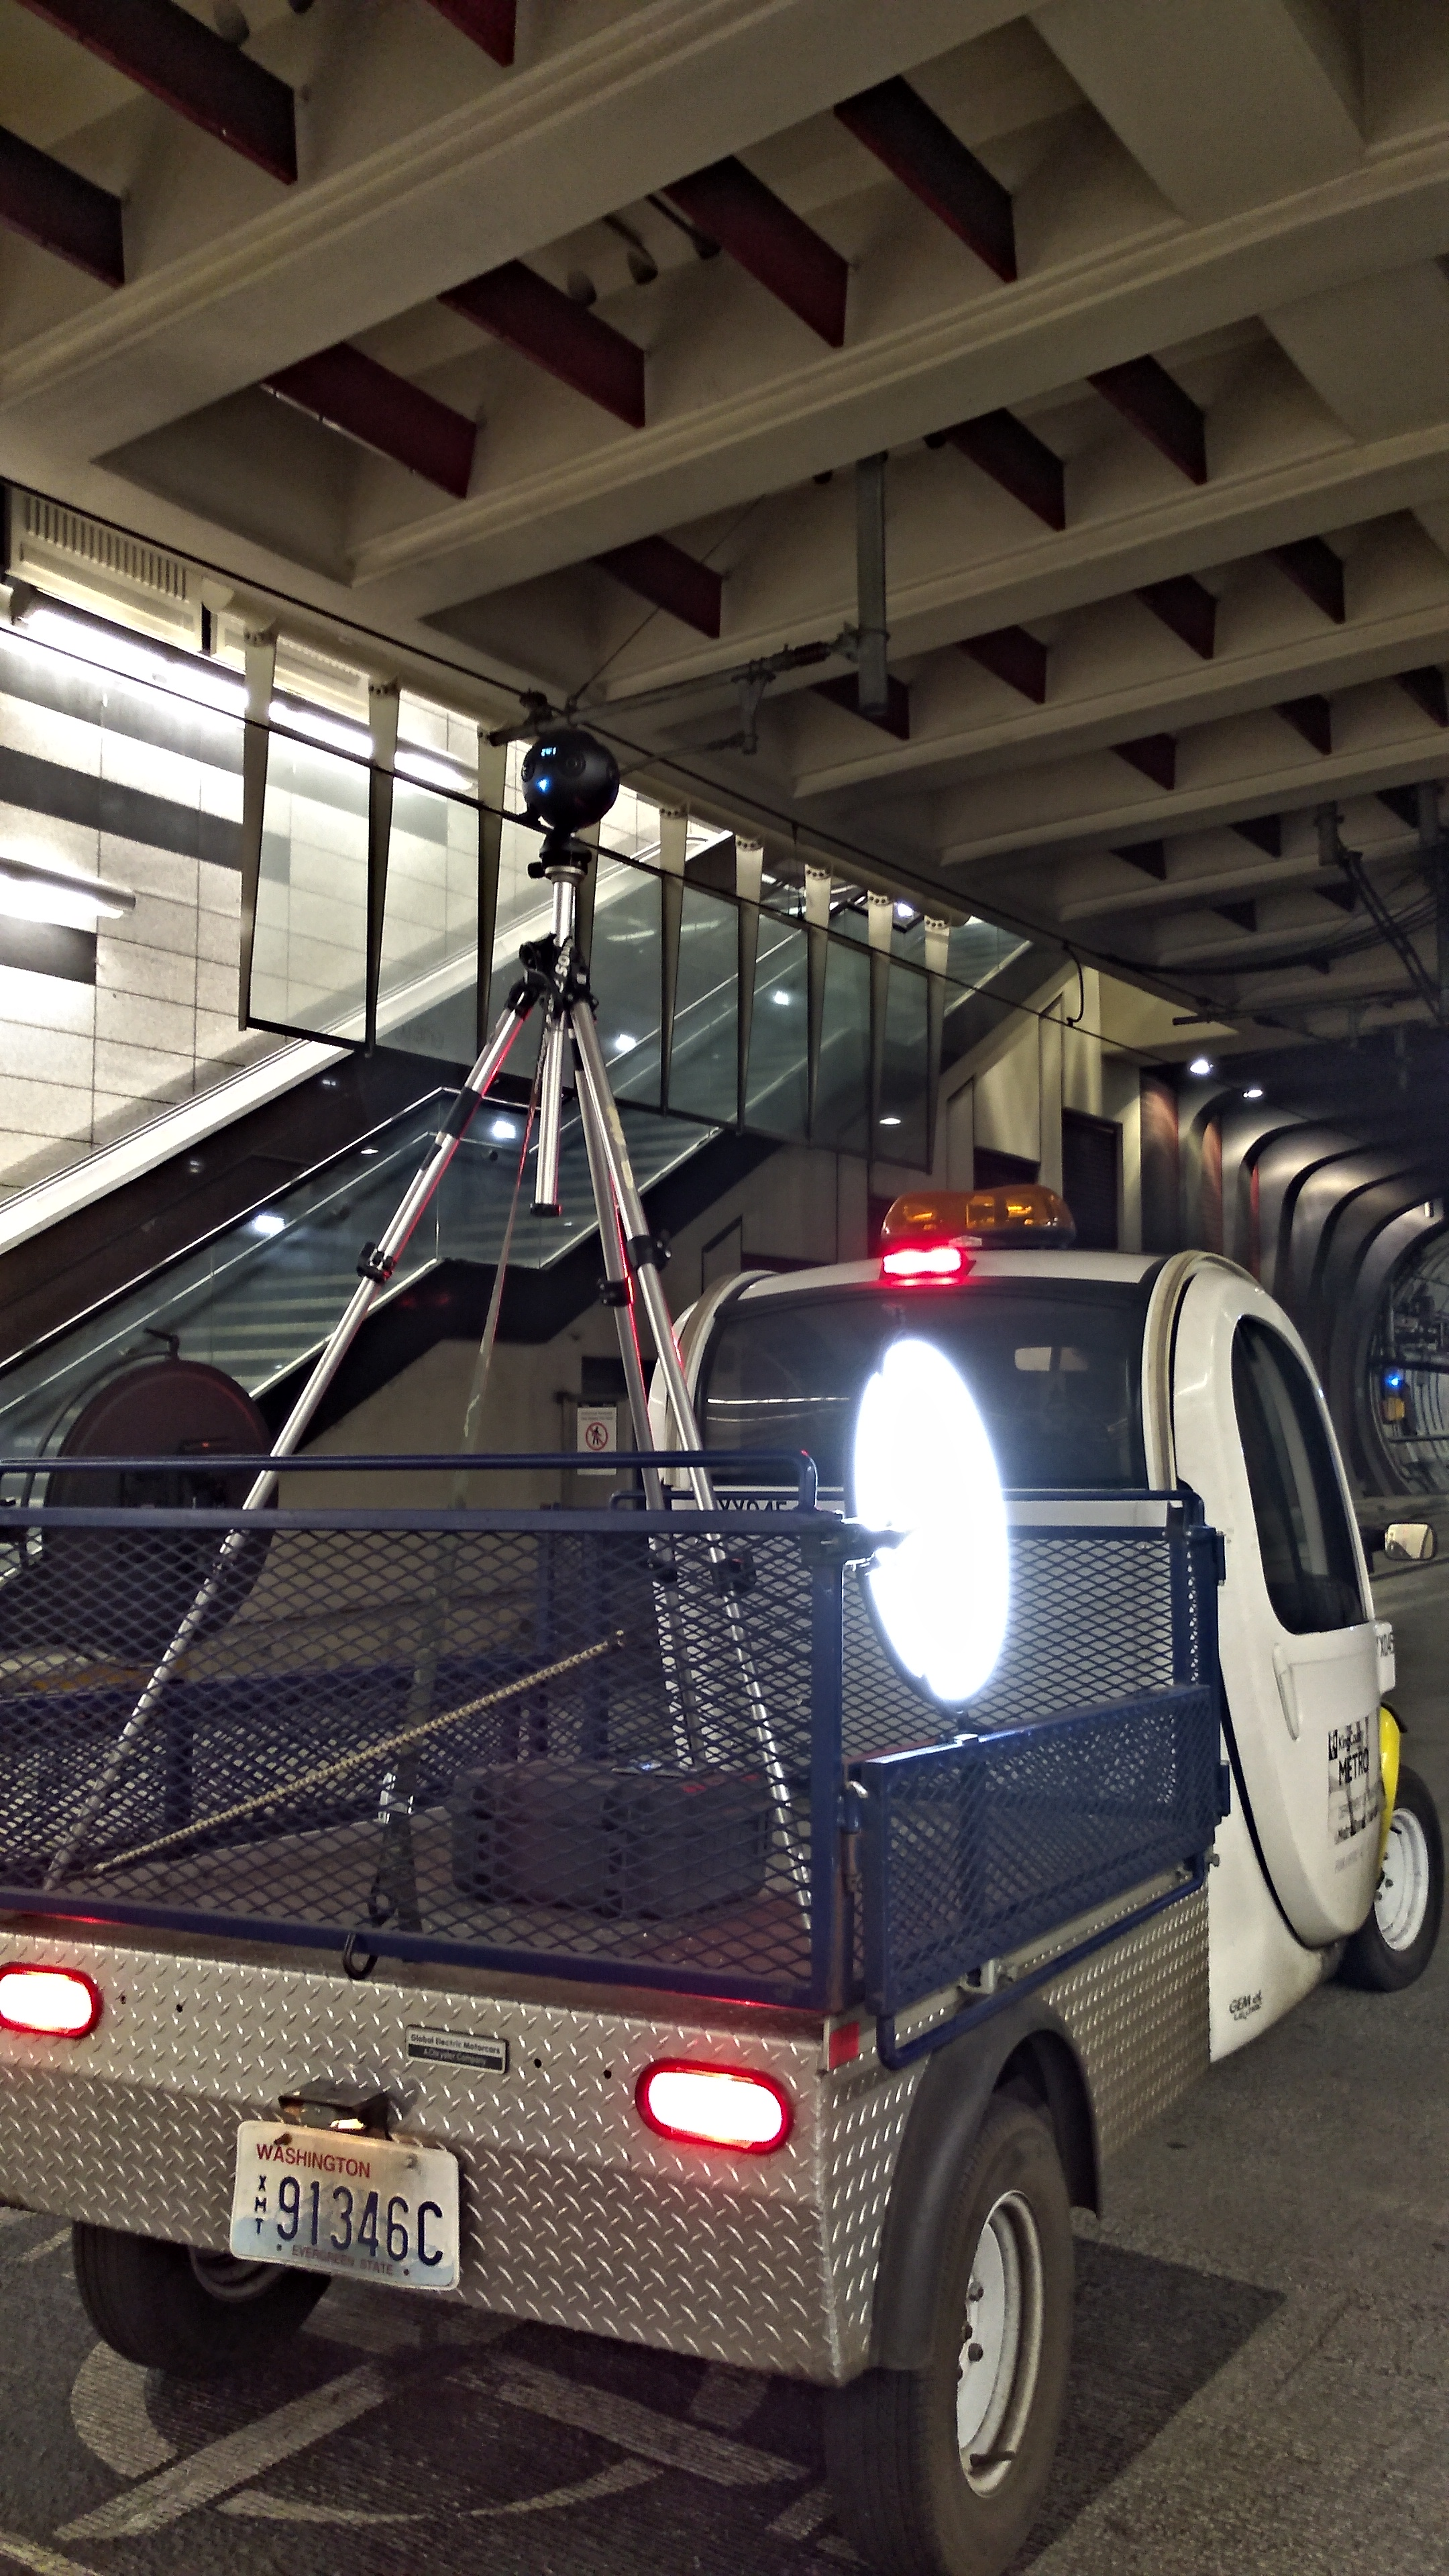 360 camera rig for underground transit shoot